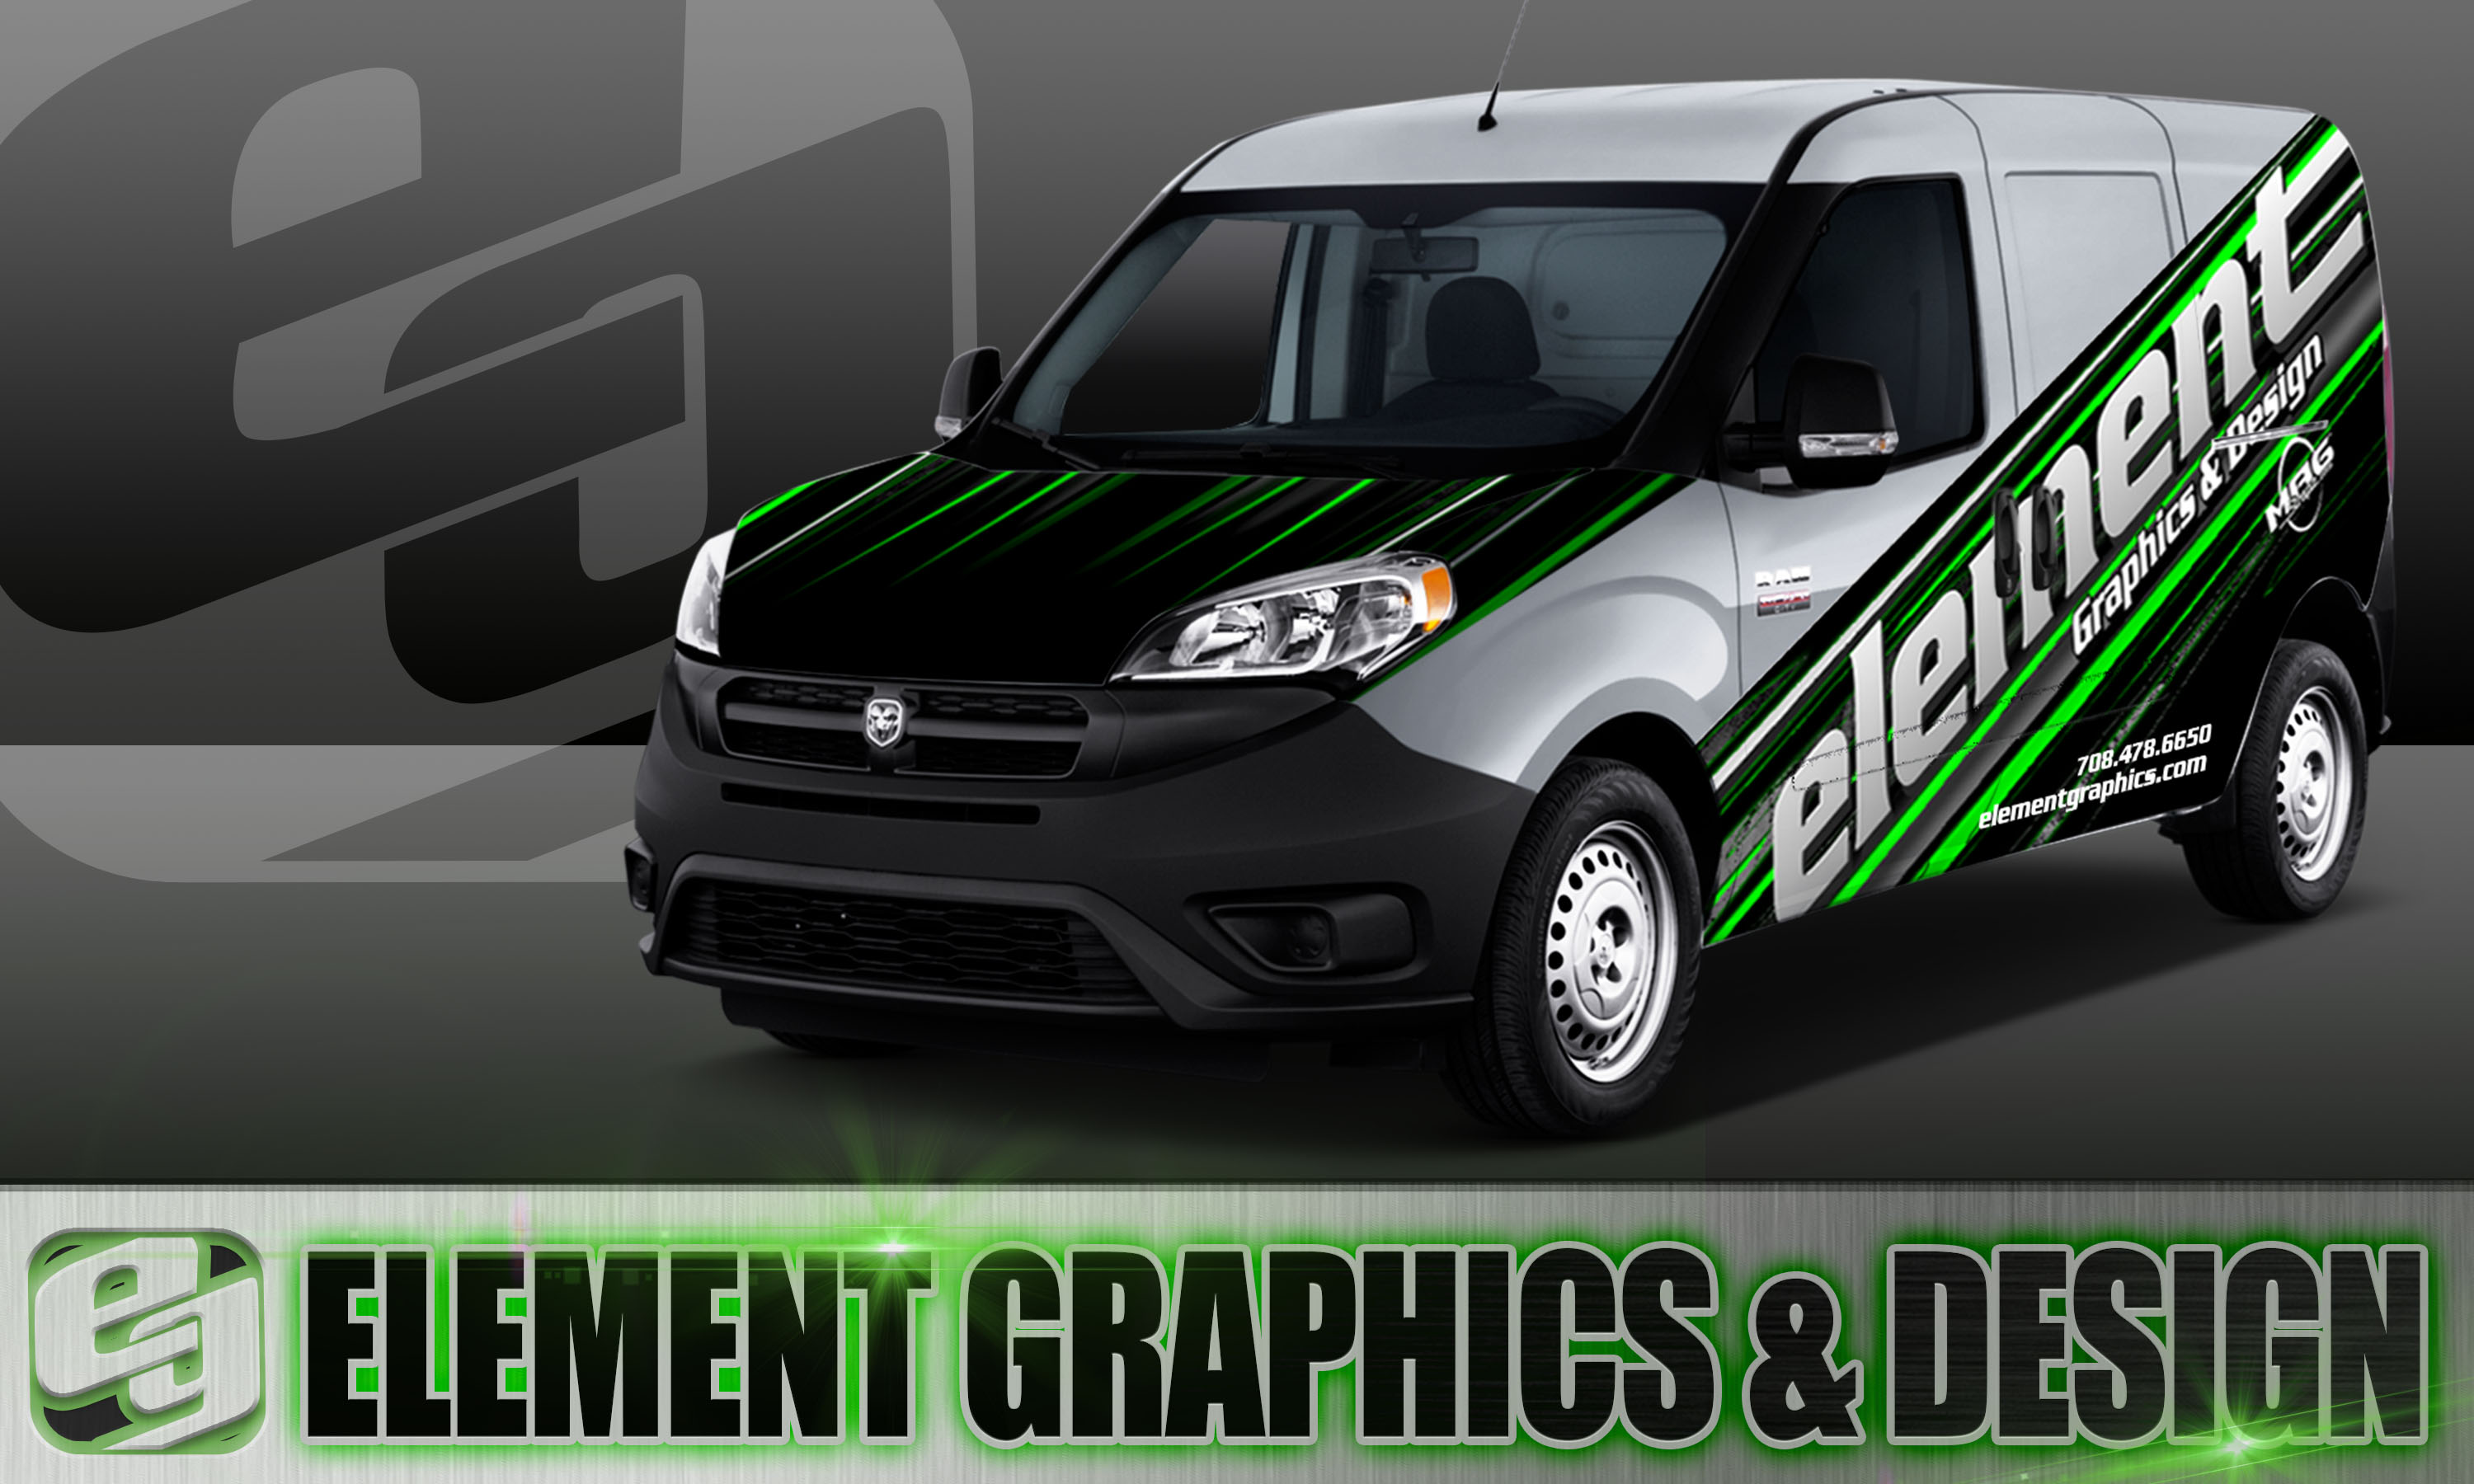 Element Graphics & Design